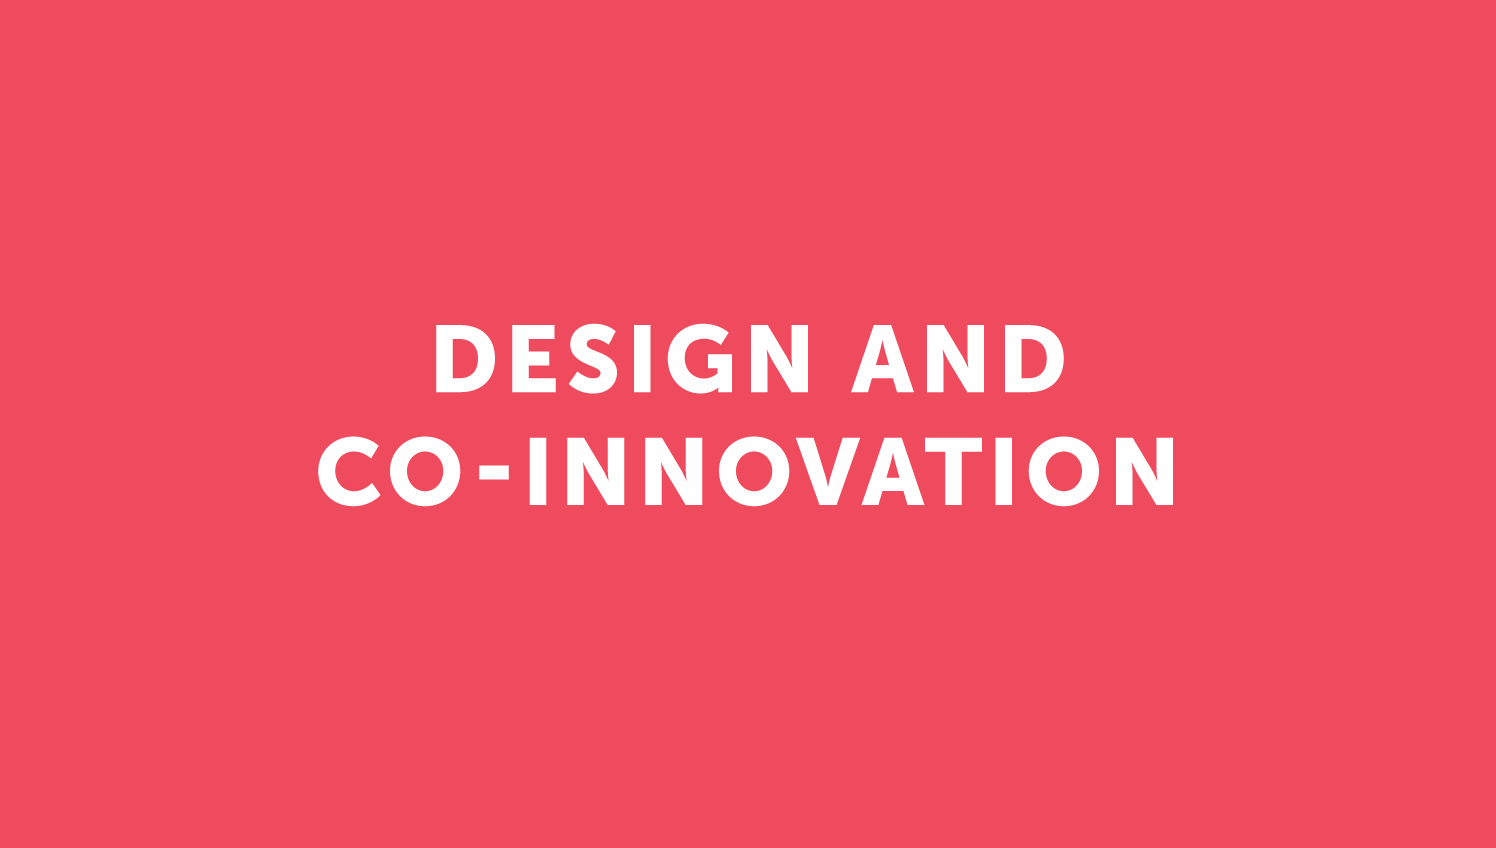 Design and co-innovation